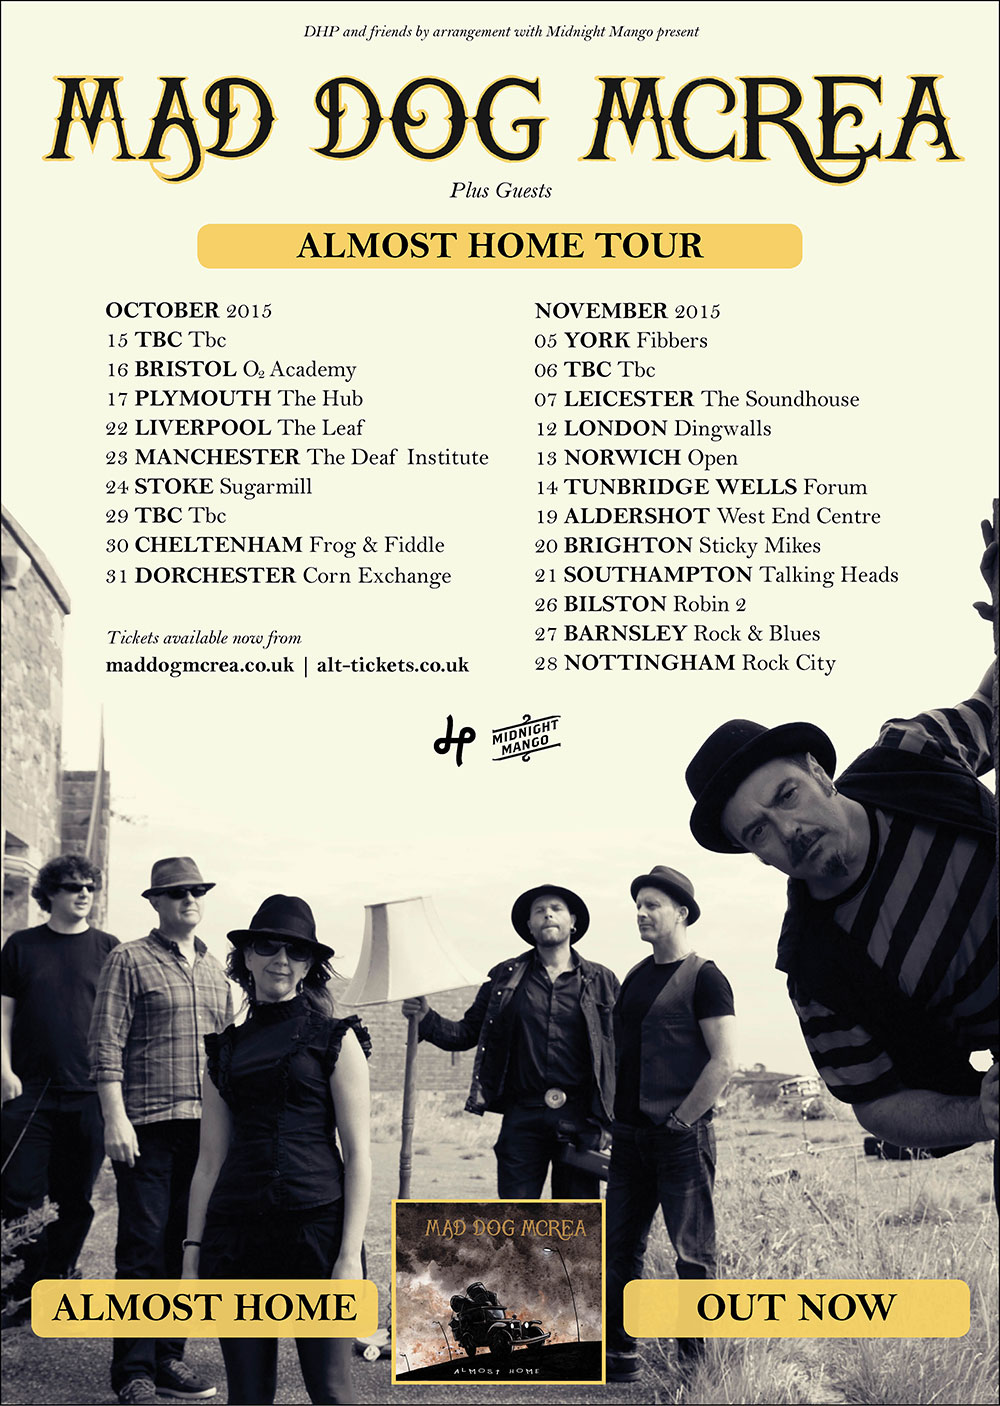 Almost Home Tour 2015